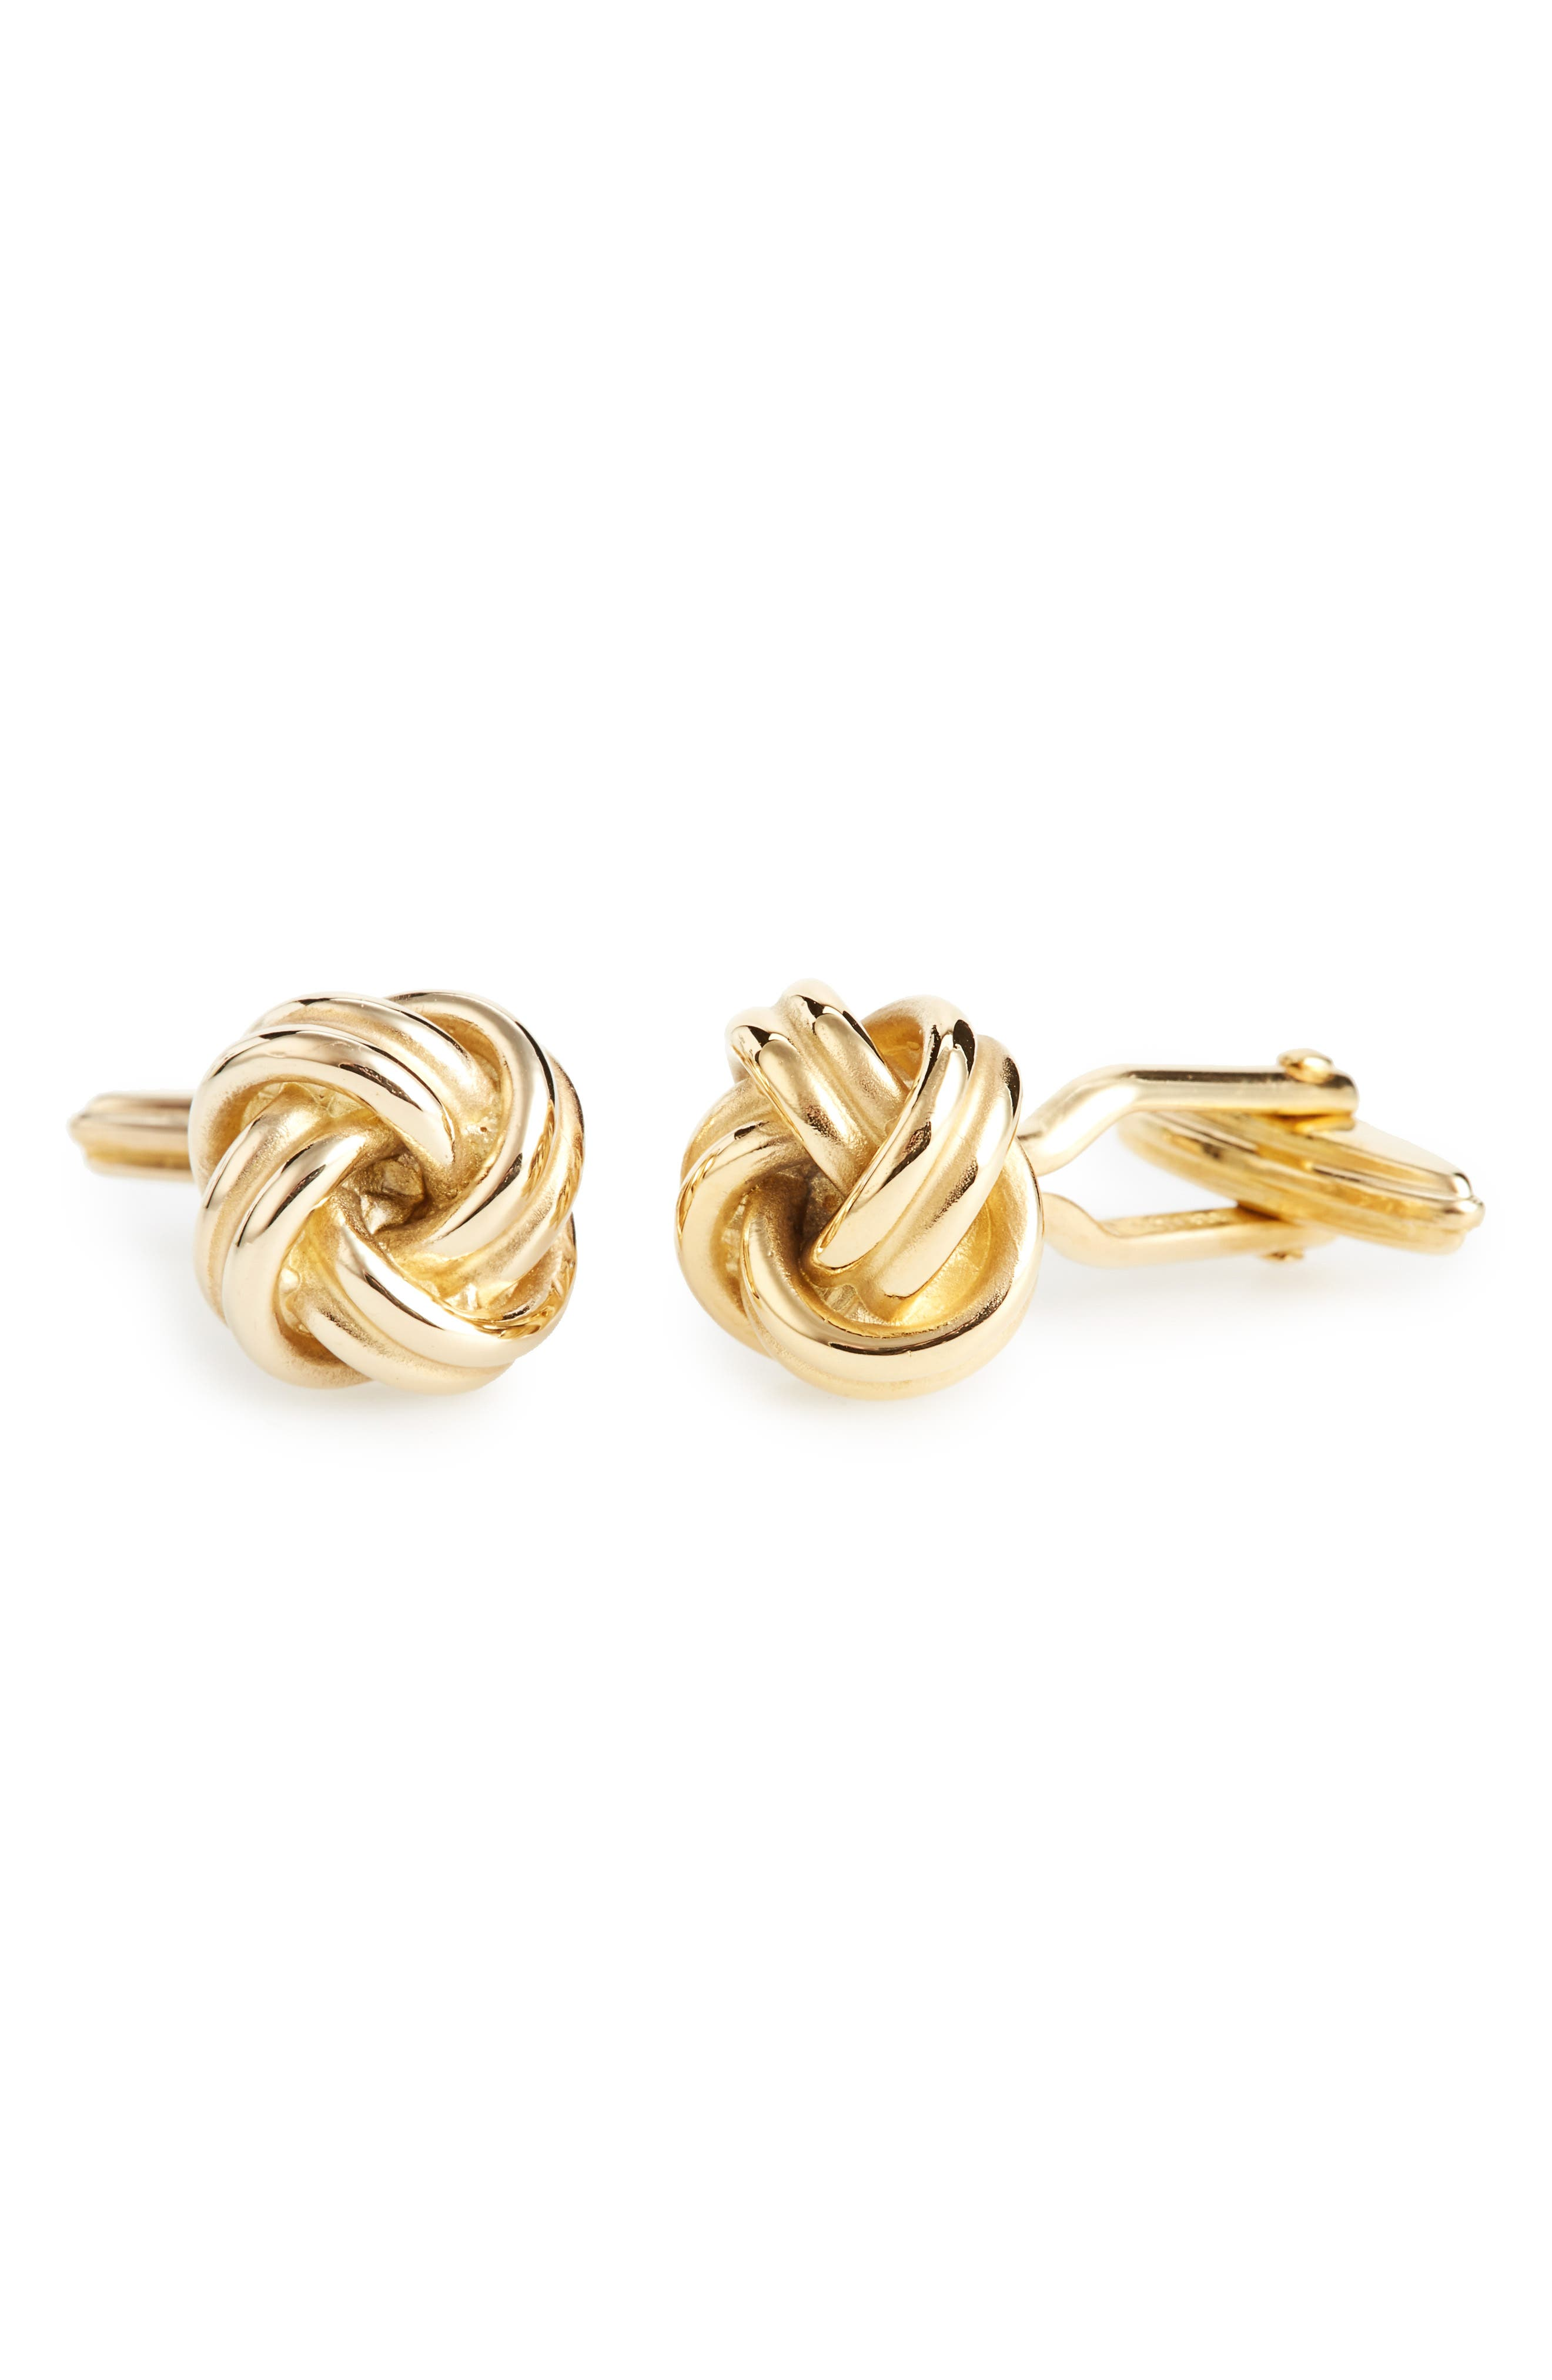 Knotted Cuff Links,                         Main,                         color,